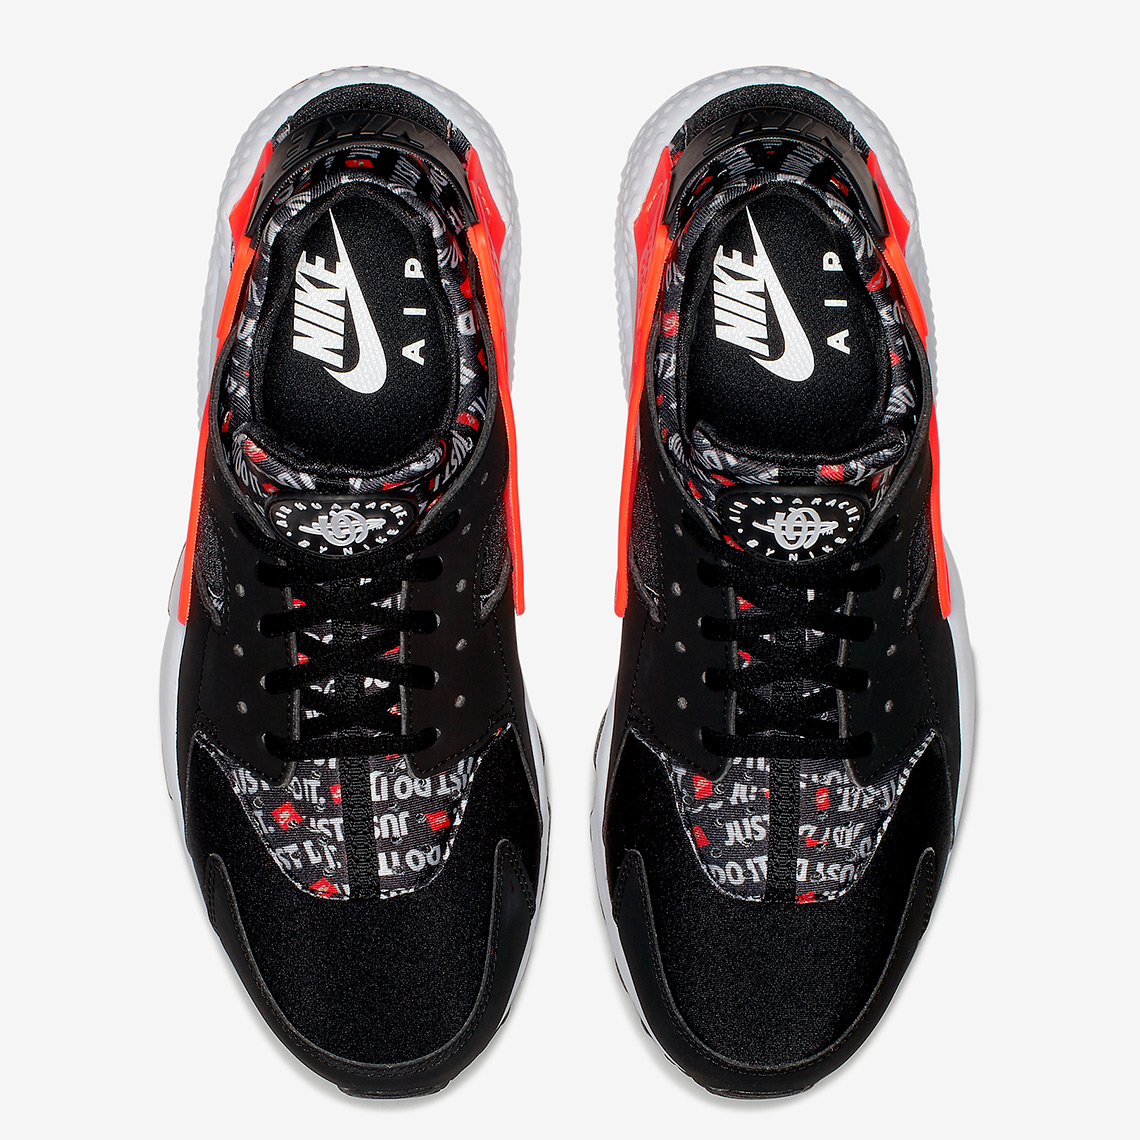 191cbe46f5c Nike Air Huarache AVAILABLE AT Foot Locker  120. Color  Black Total  Orange-White Style Code  AT5017-001